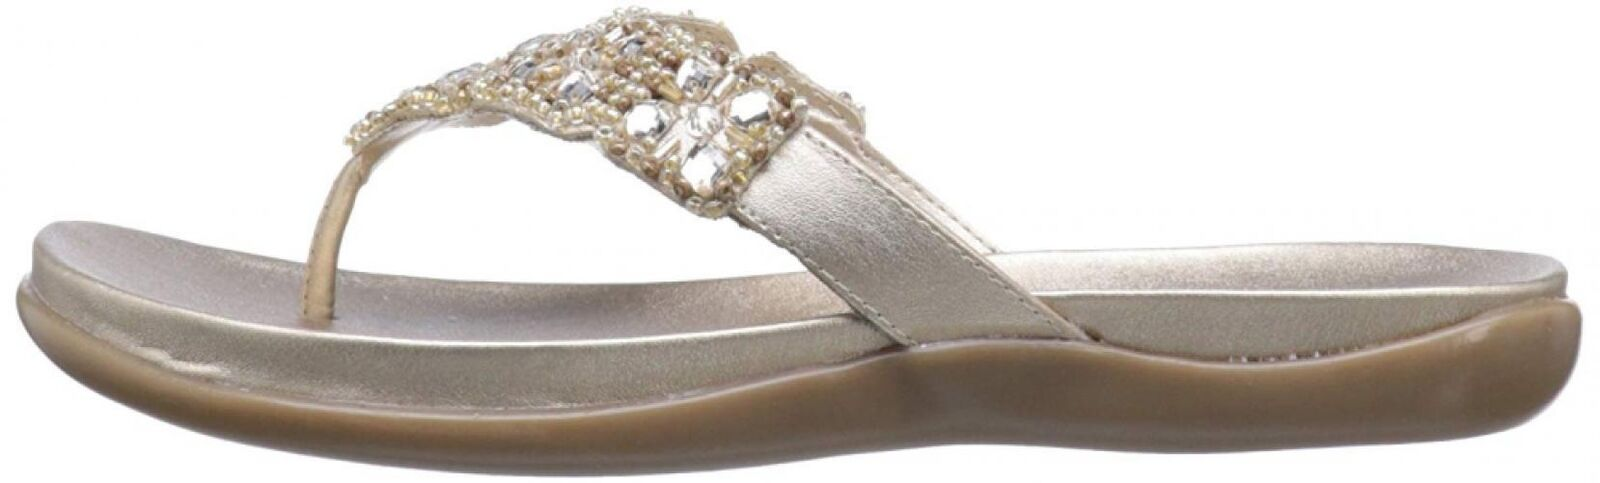 Kenneth Cole REACTION Donna  Glam-Athon Flat Flat Flat Sandal d3acda